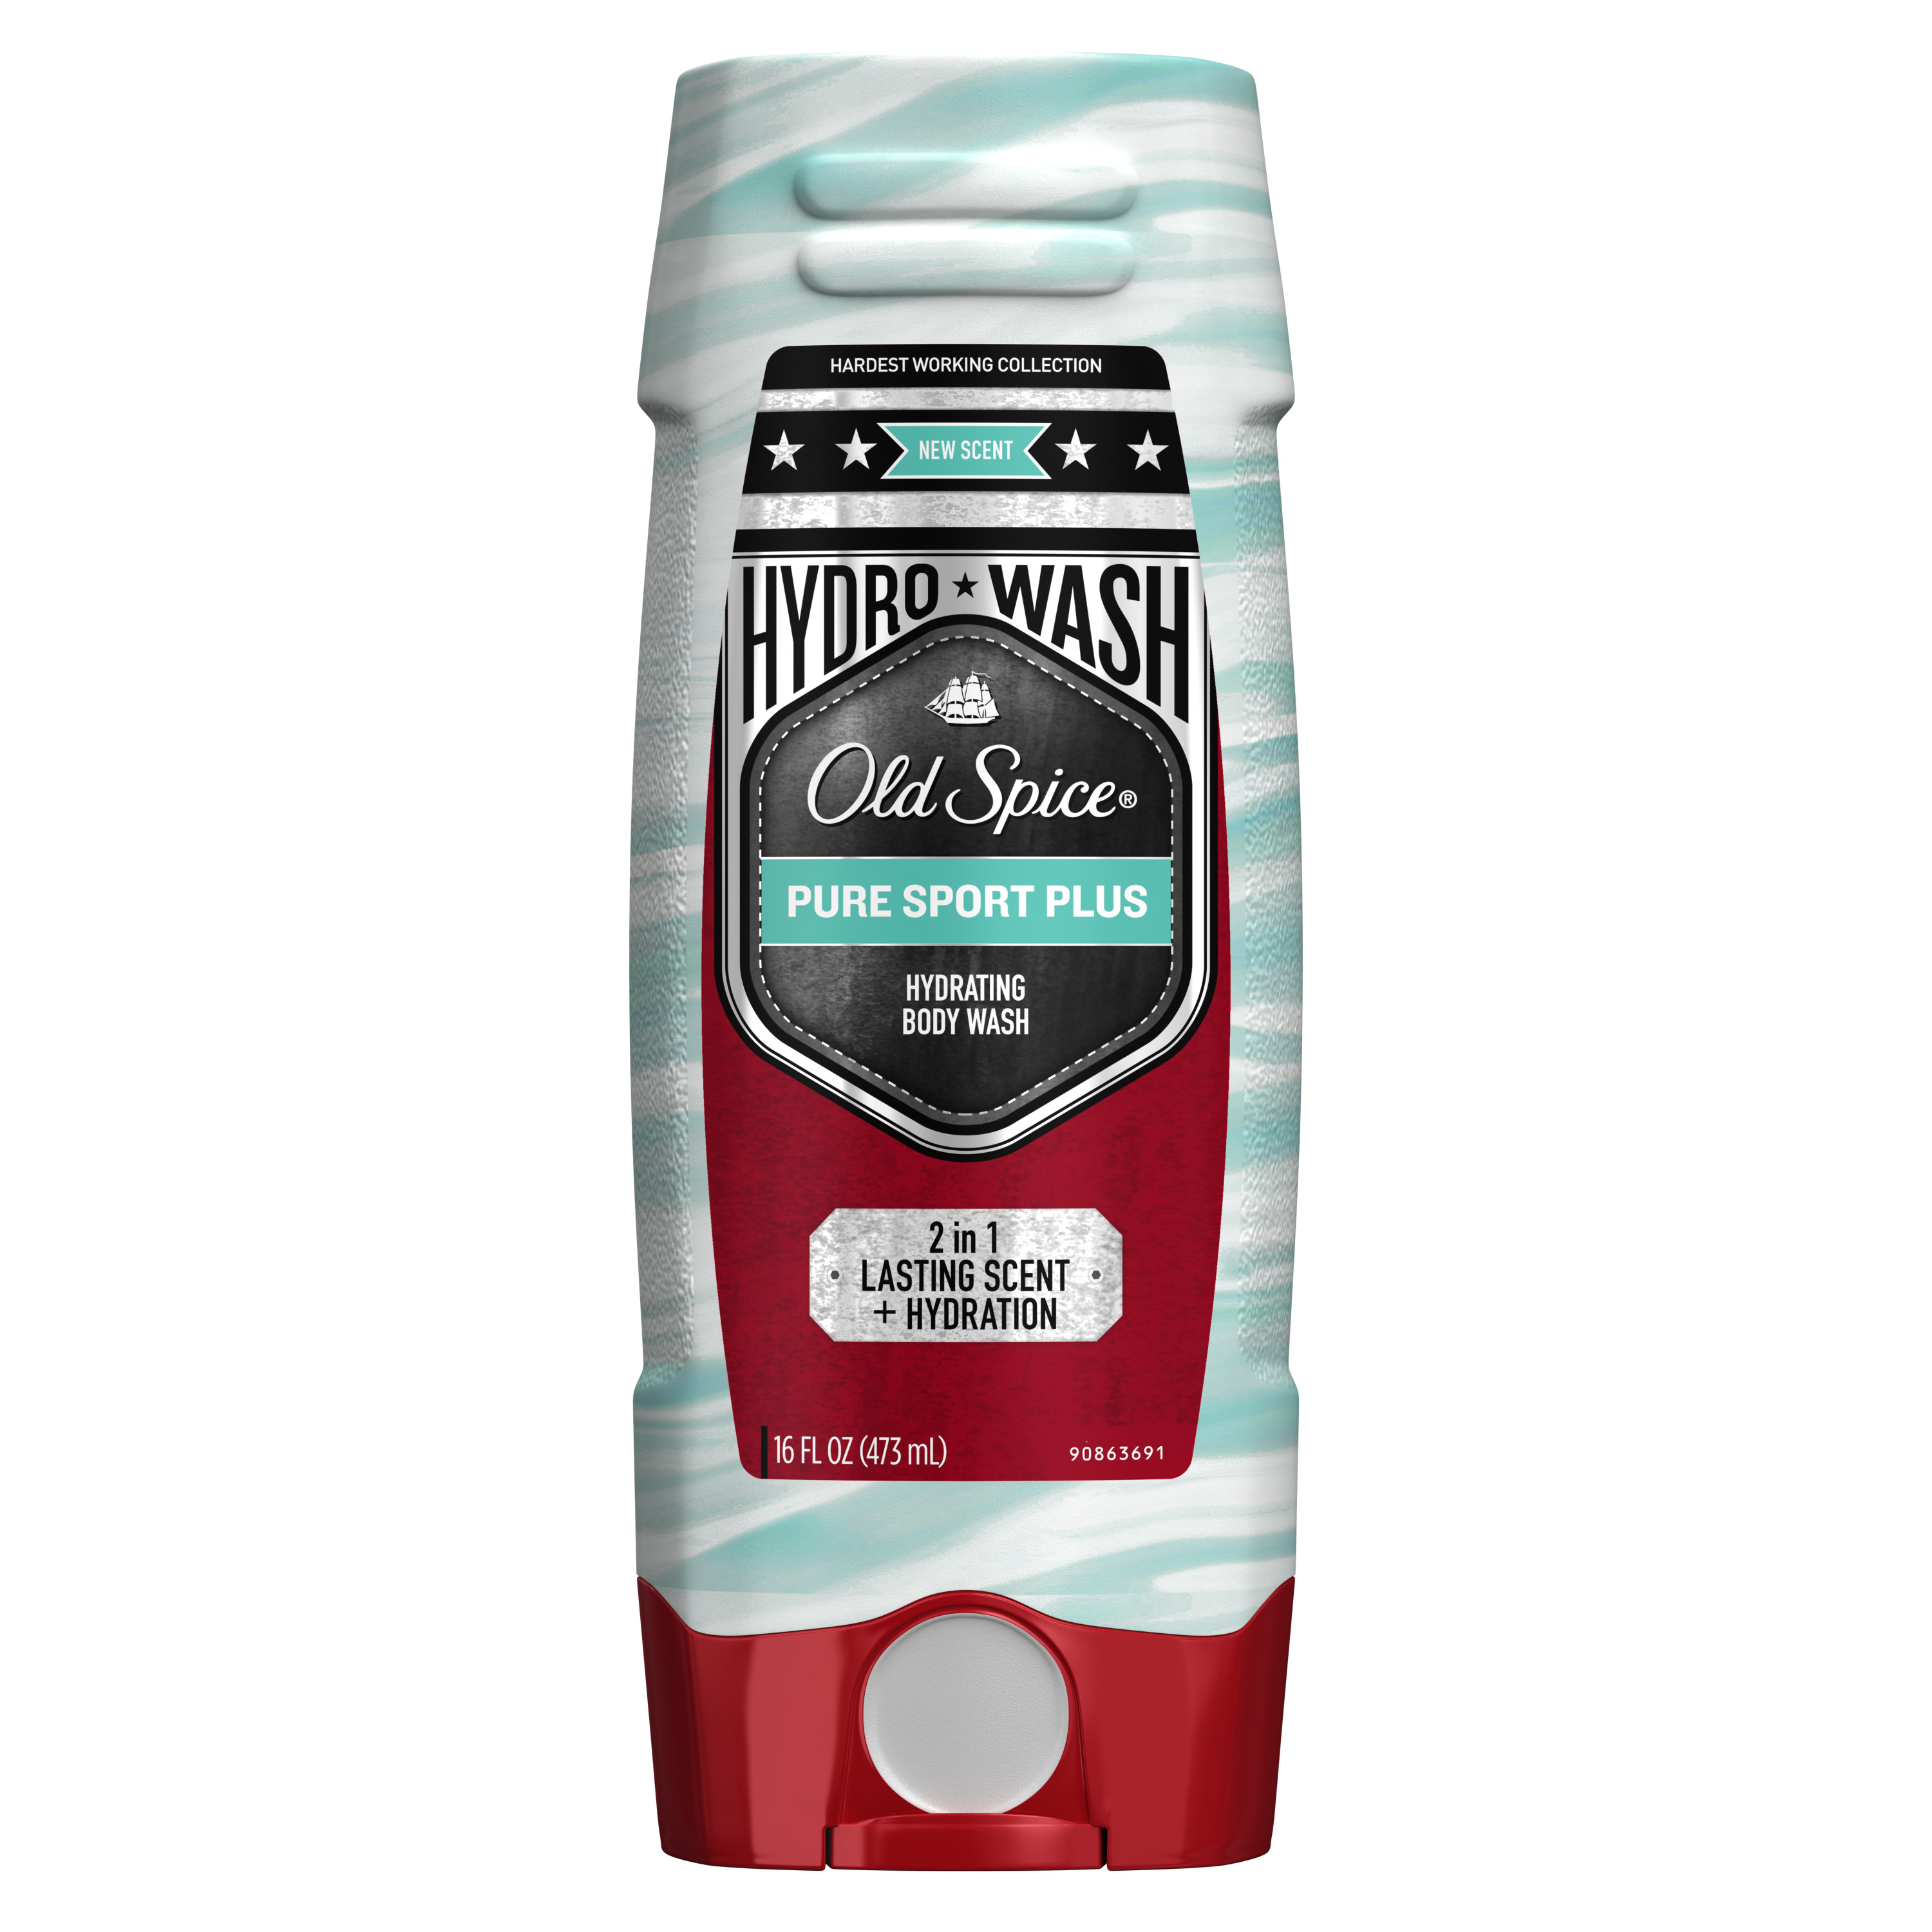 Old Spice Hydro Wash Body Wash Hardest Working Collection Pure Sport Plus 16 oz